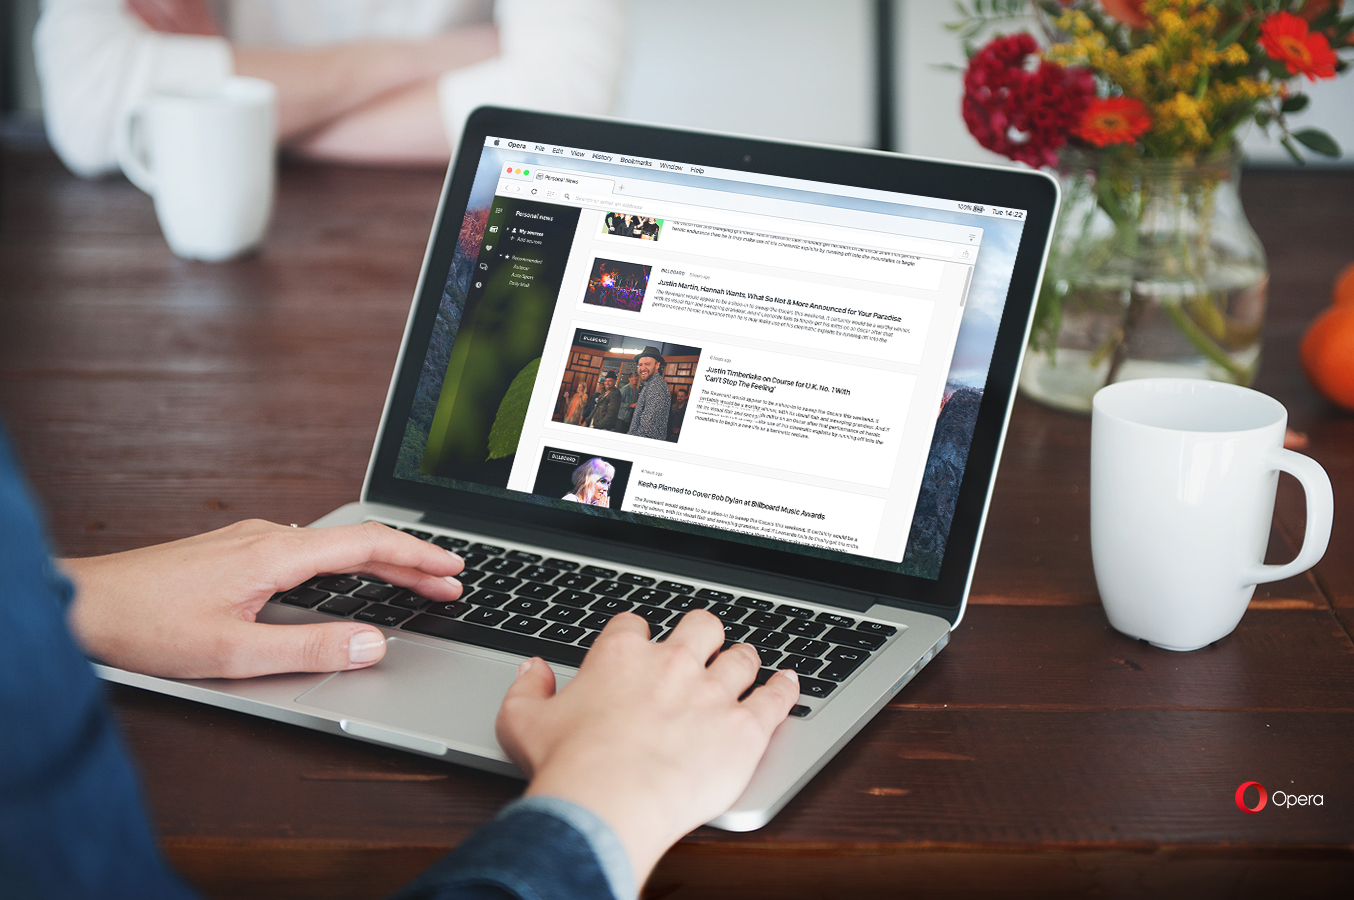 Personalized newsreader - How to set it up in the browser